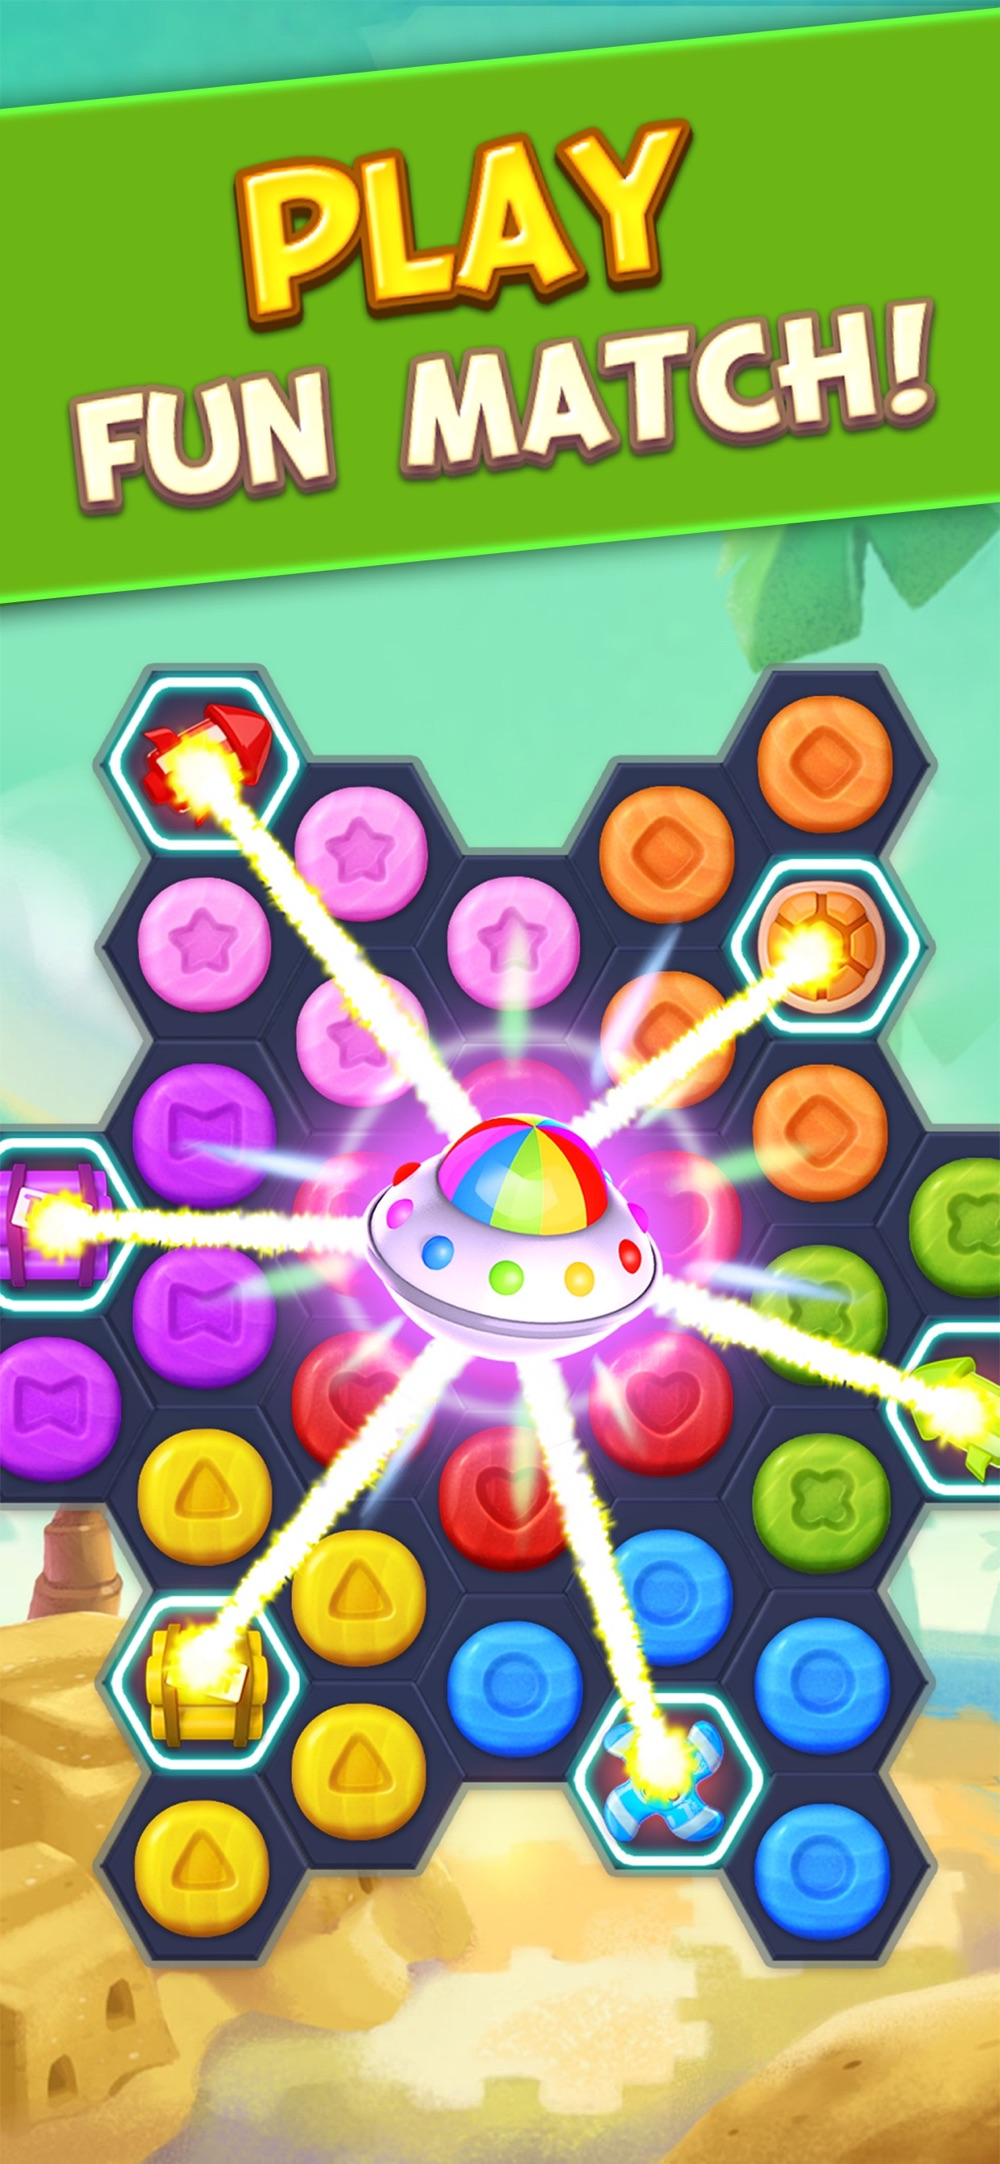 Toy Party: Match 3 Hexa Blast! hack tool